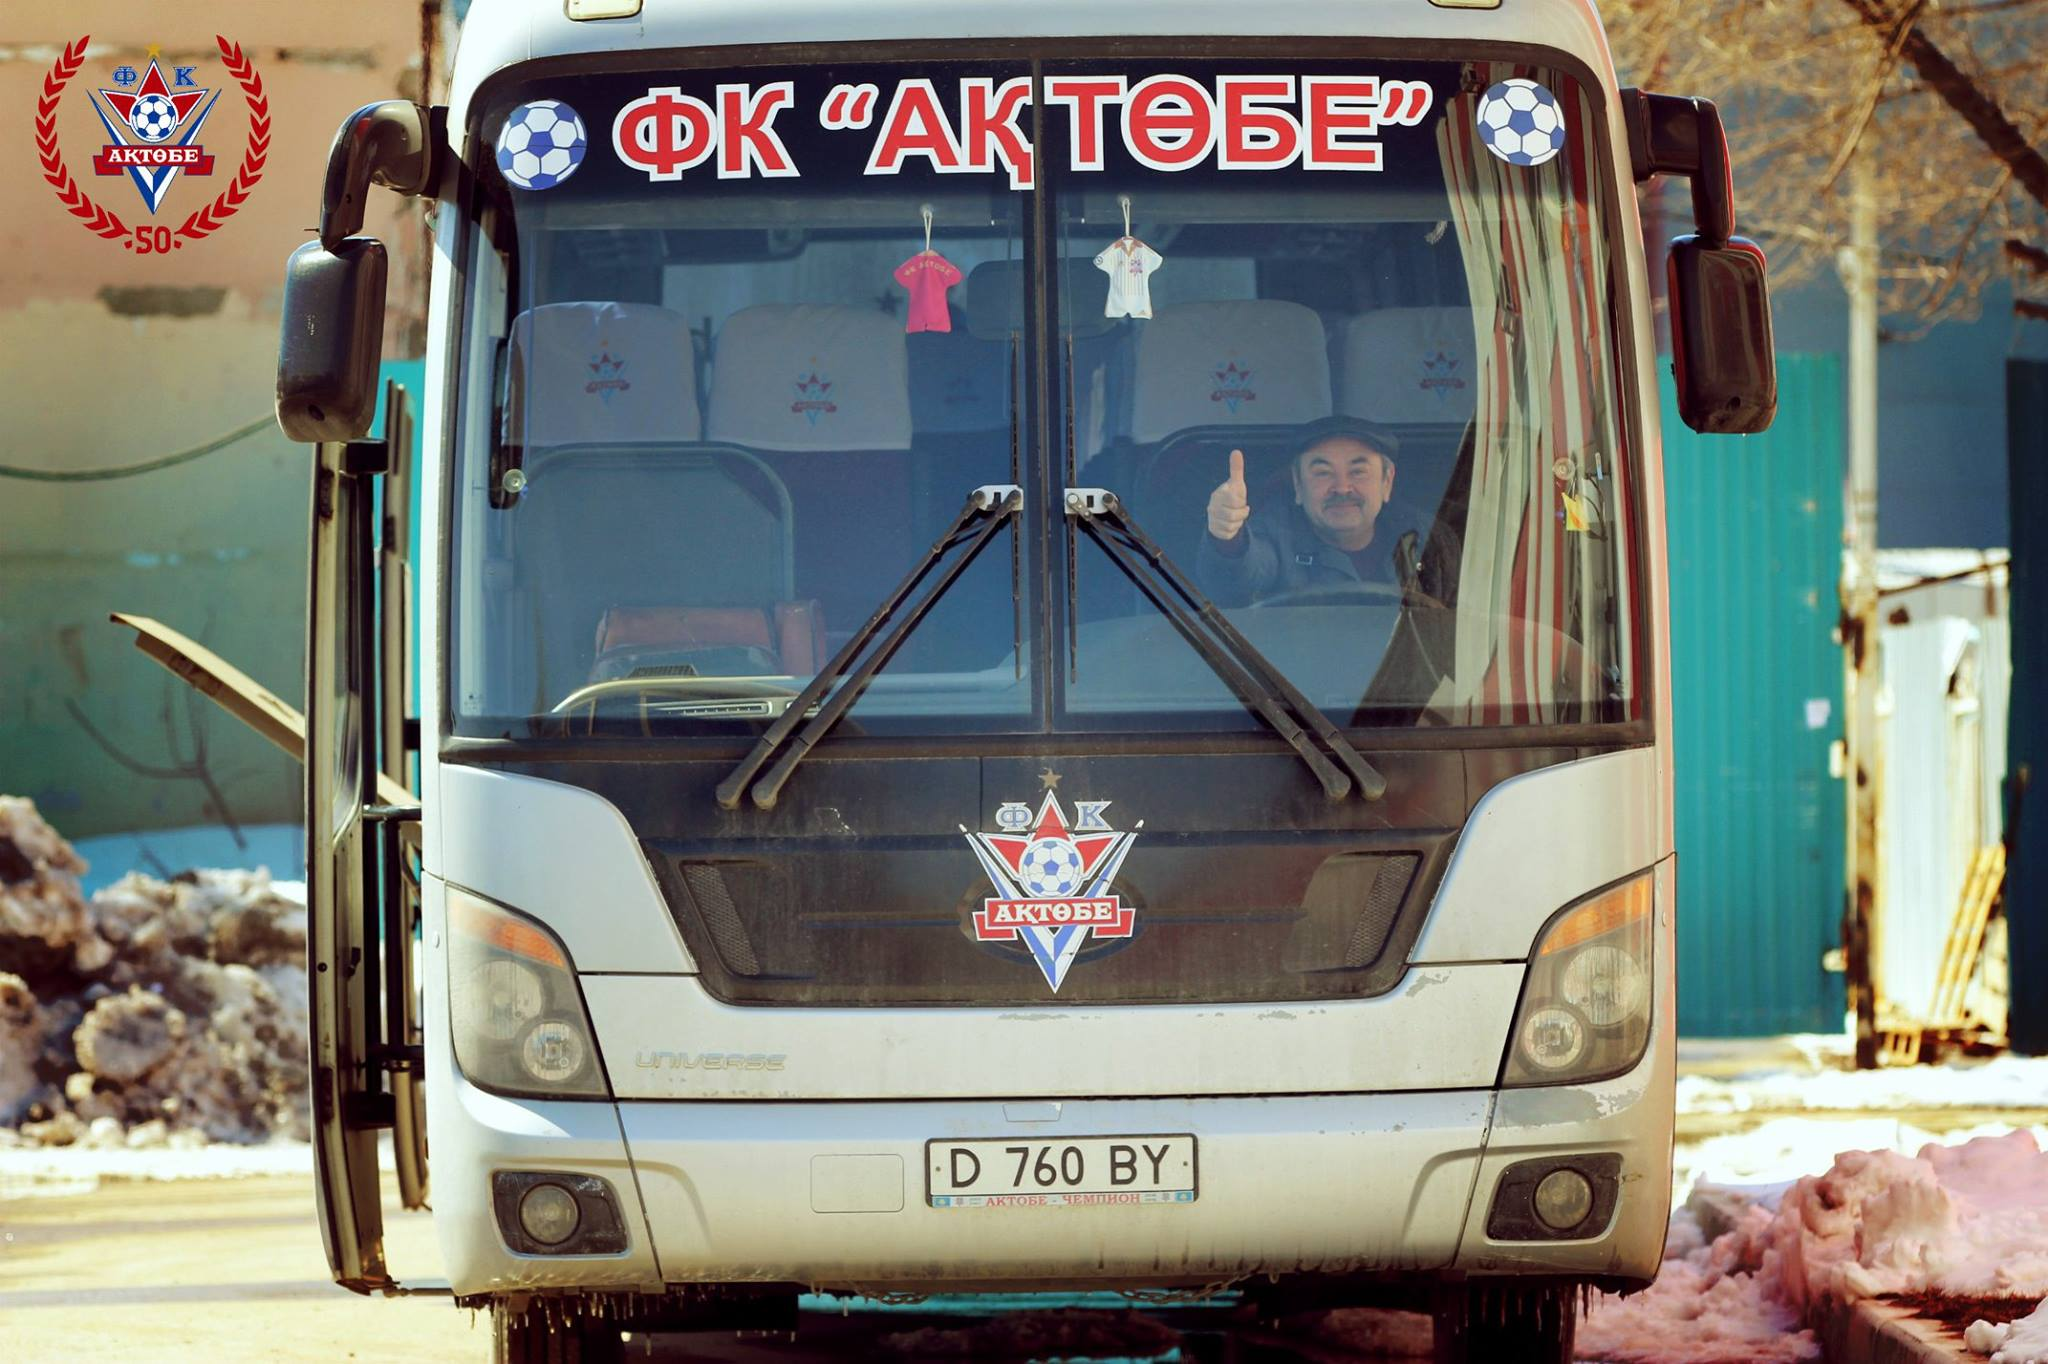 Bus Club Aktobe